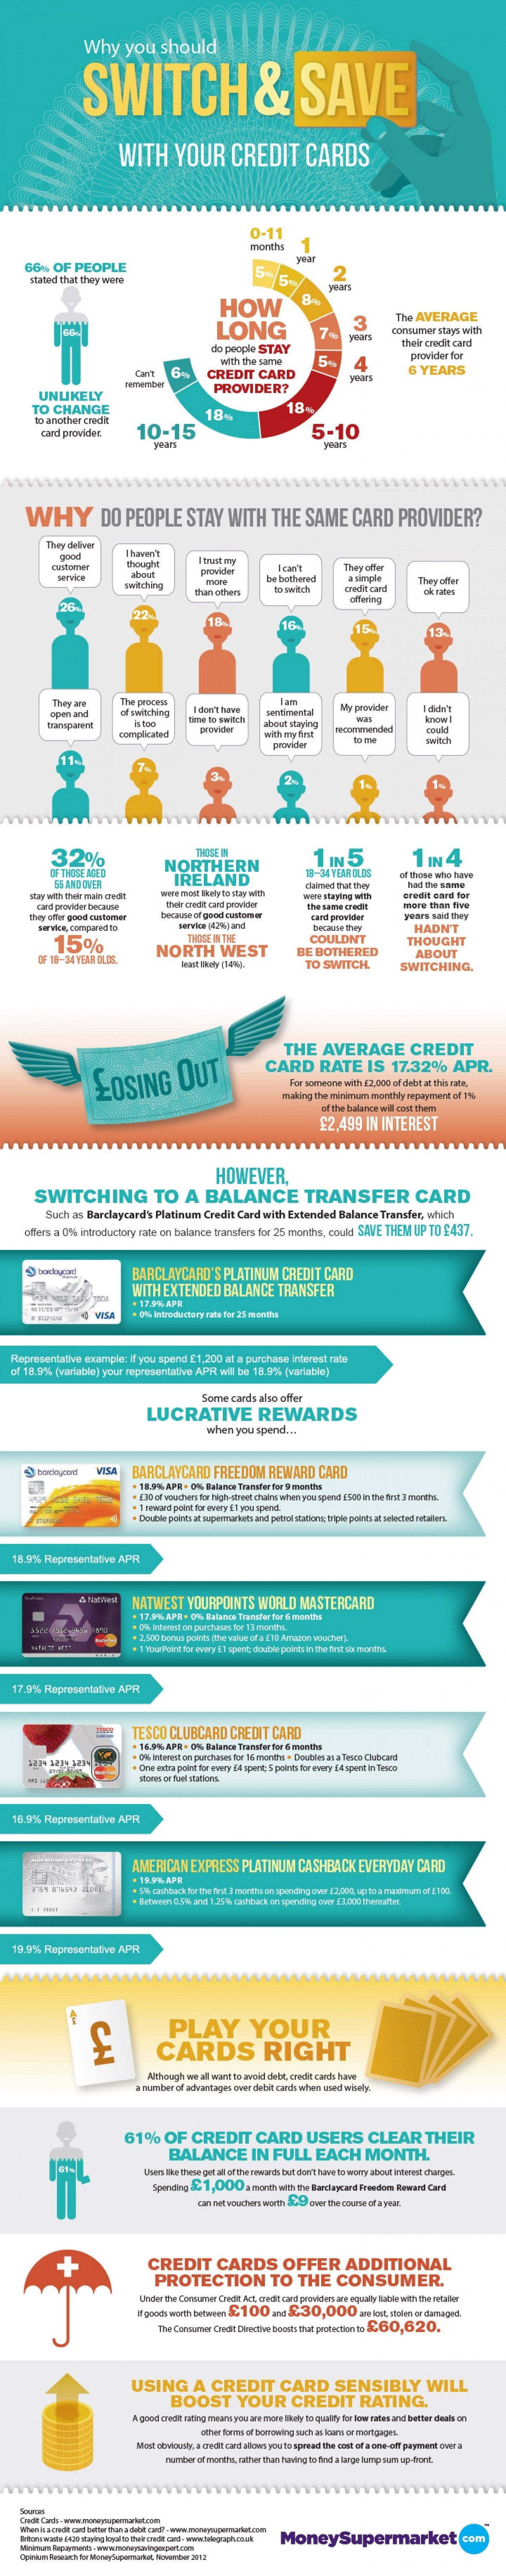 Why you Should Switch and Save with Your Credit Cards Infographic